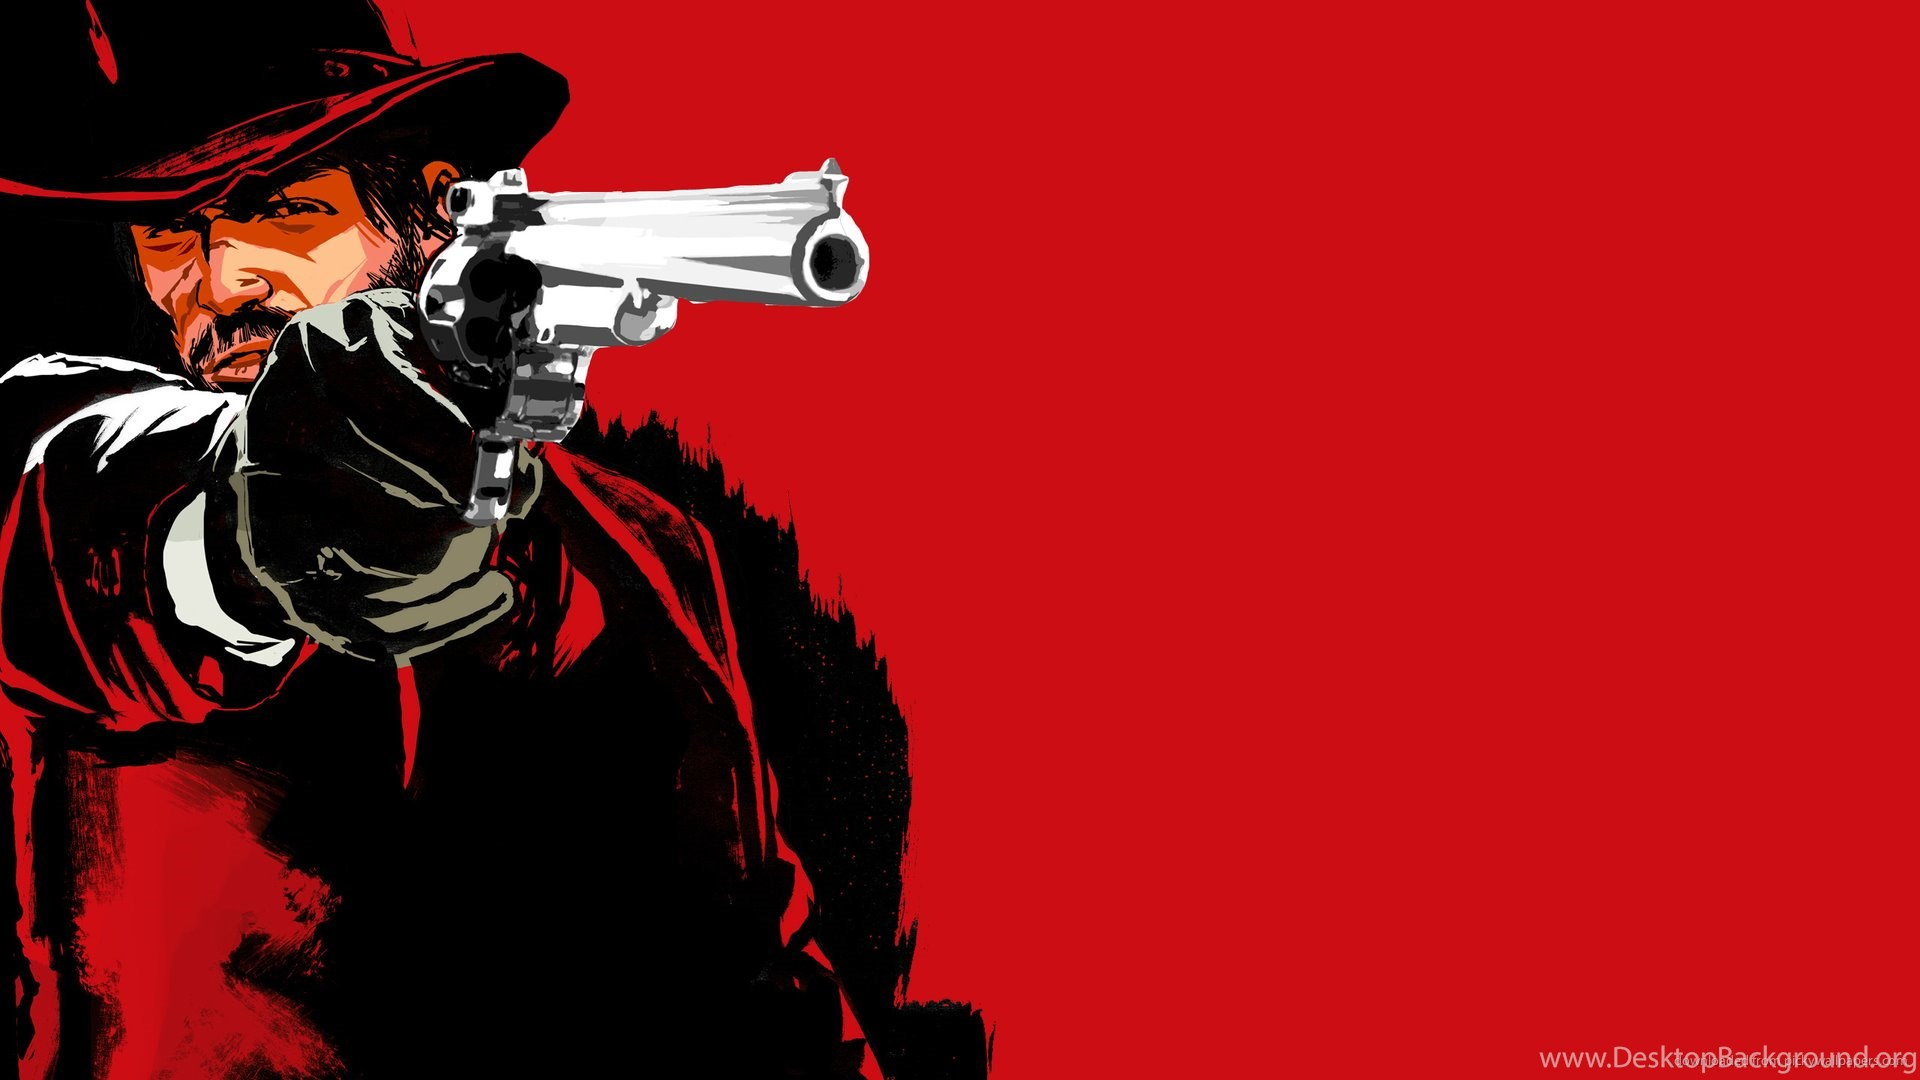 Red Dead Redemption Wallpapers Iphone Wallpaper Desktop Background